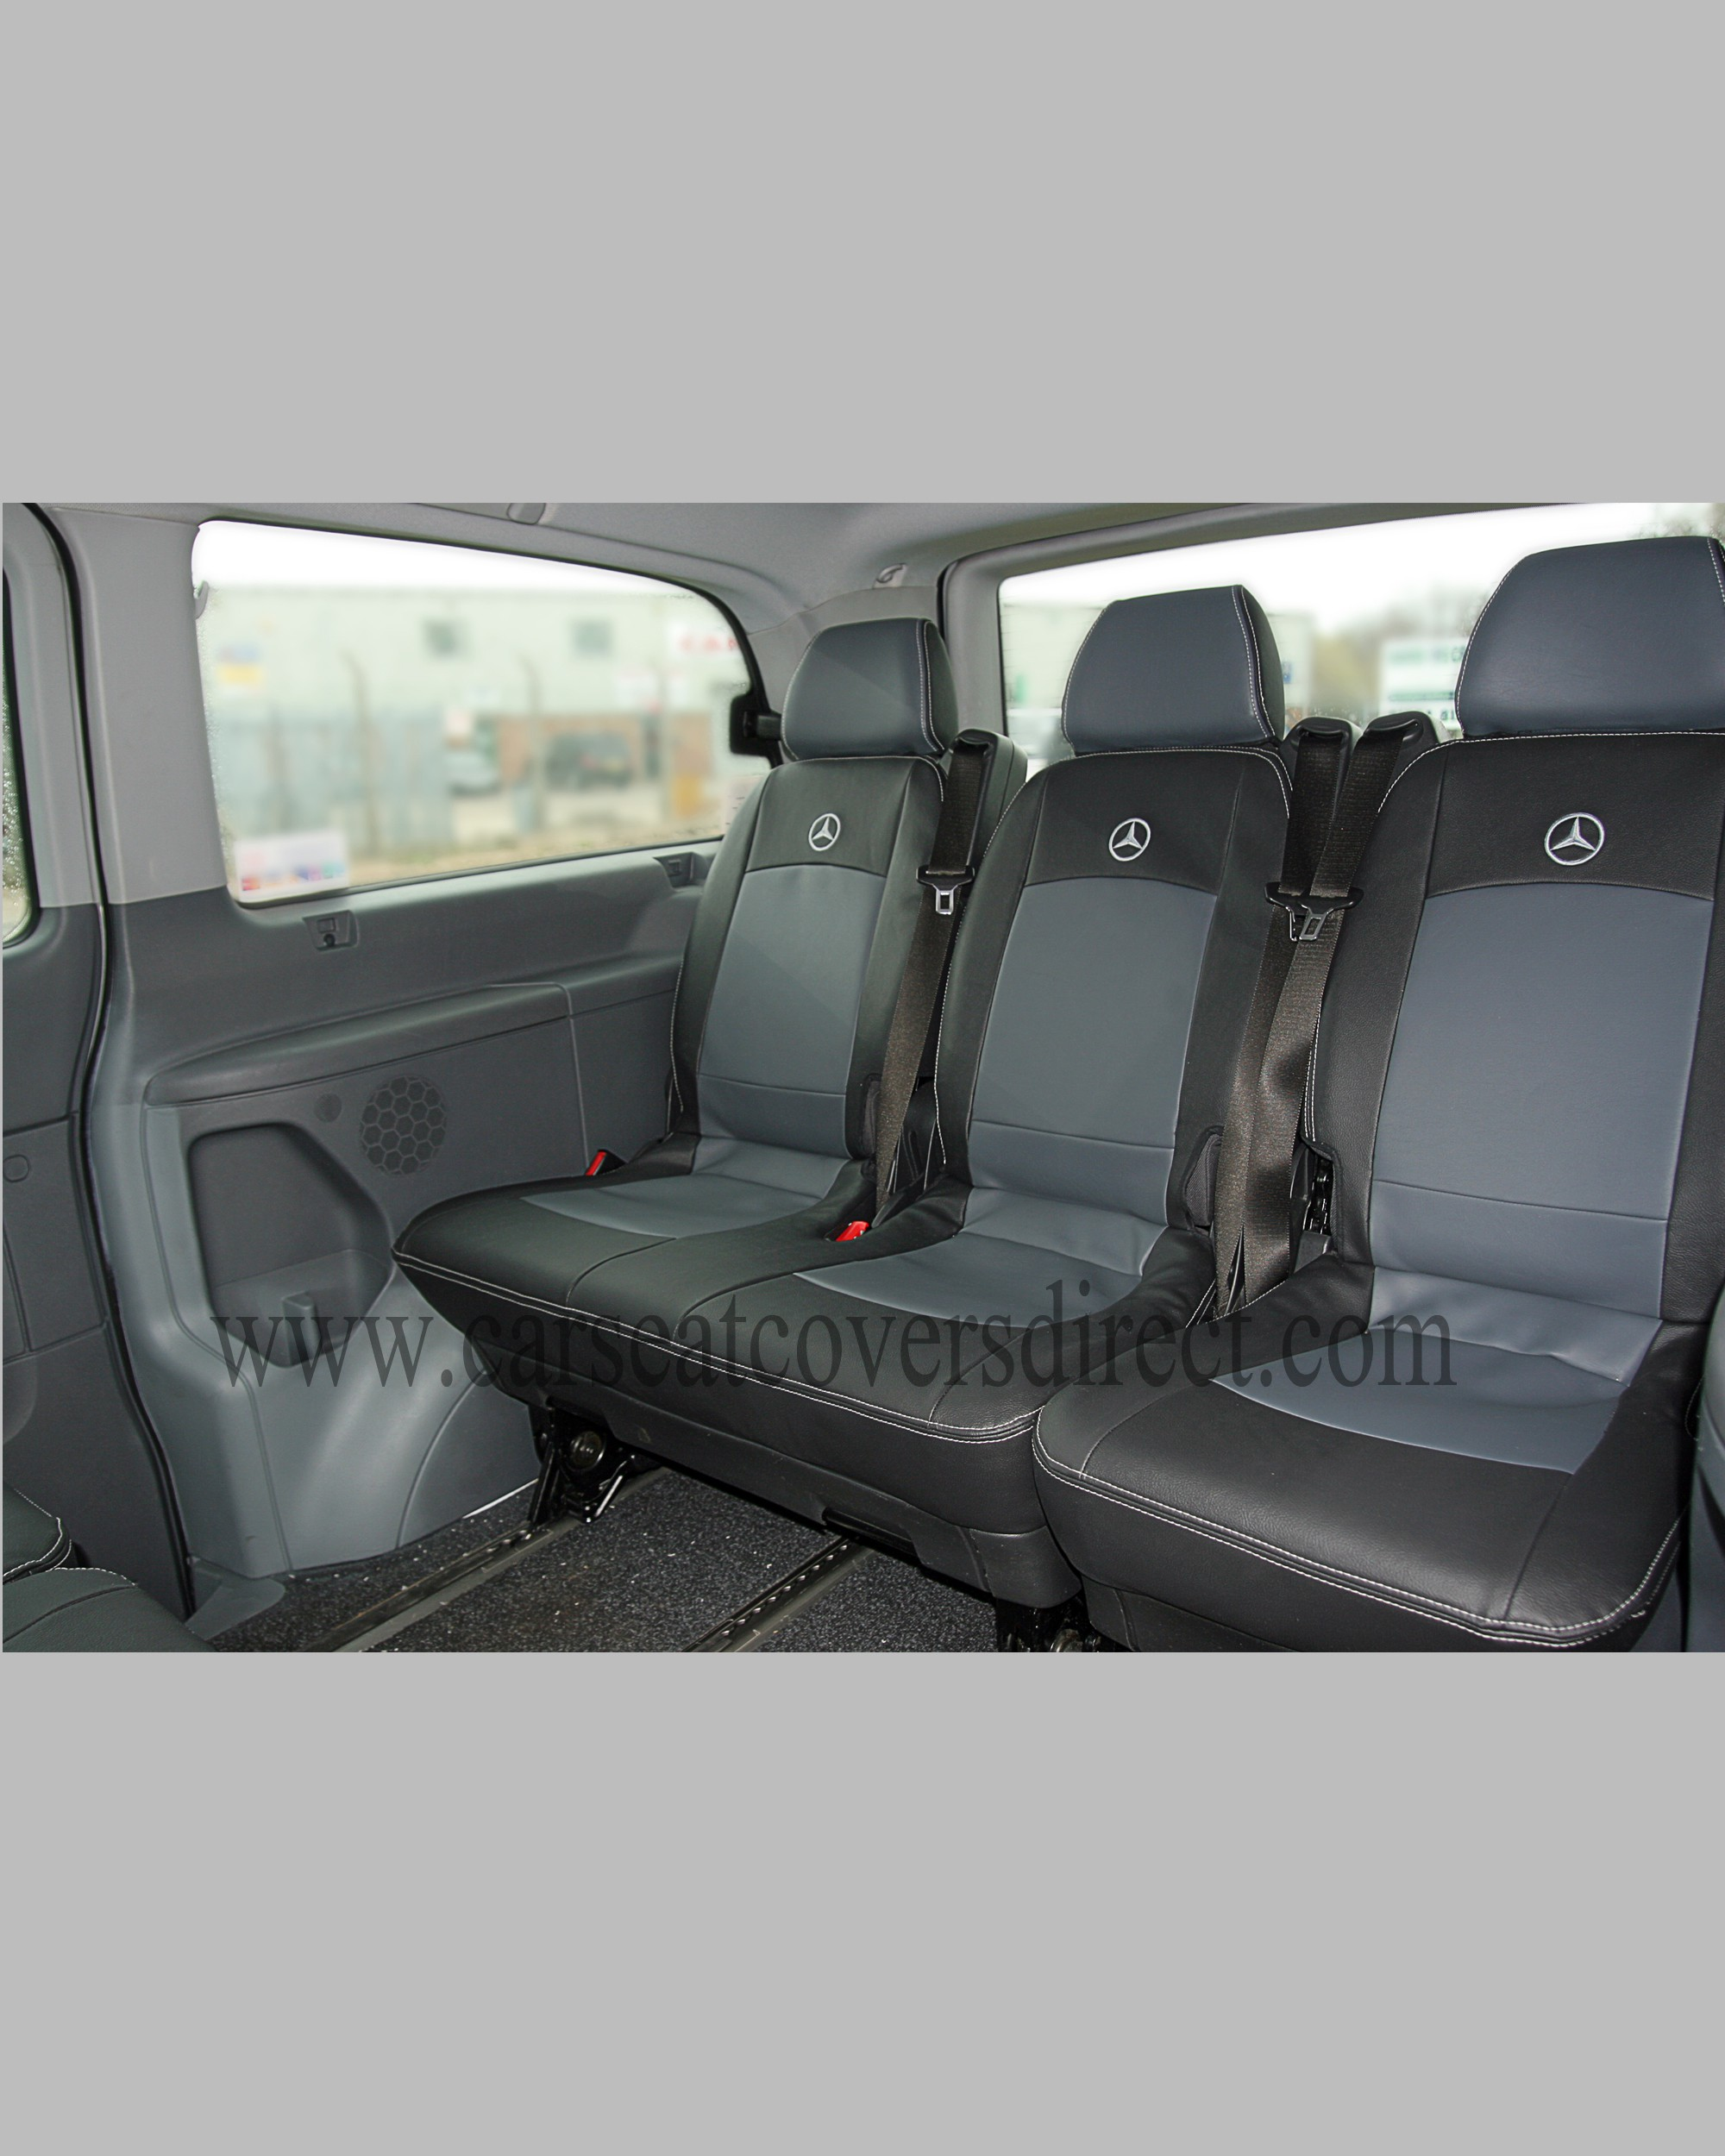 mercedes vito seat covers tailored w639 covers car seat covers direct tailored to your choice. Black Bedroom Furniture Sets. Home Design Ideas